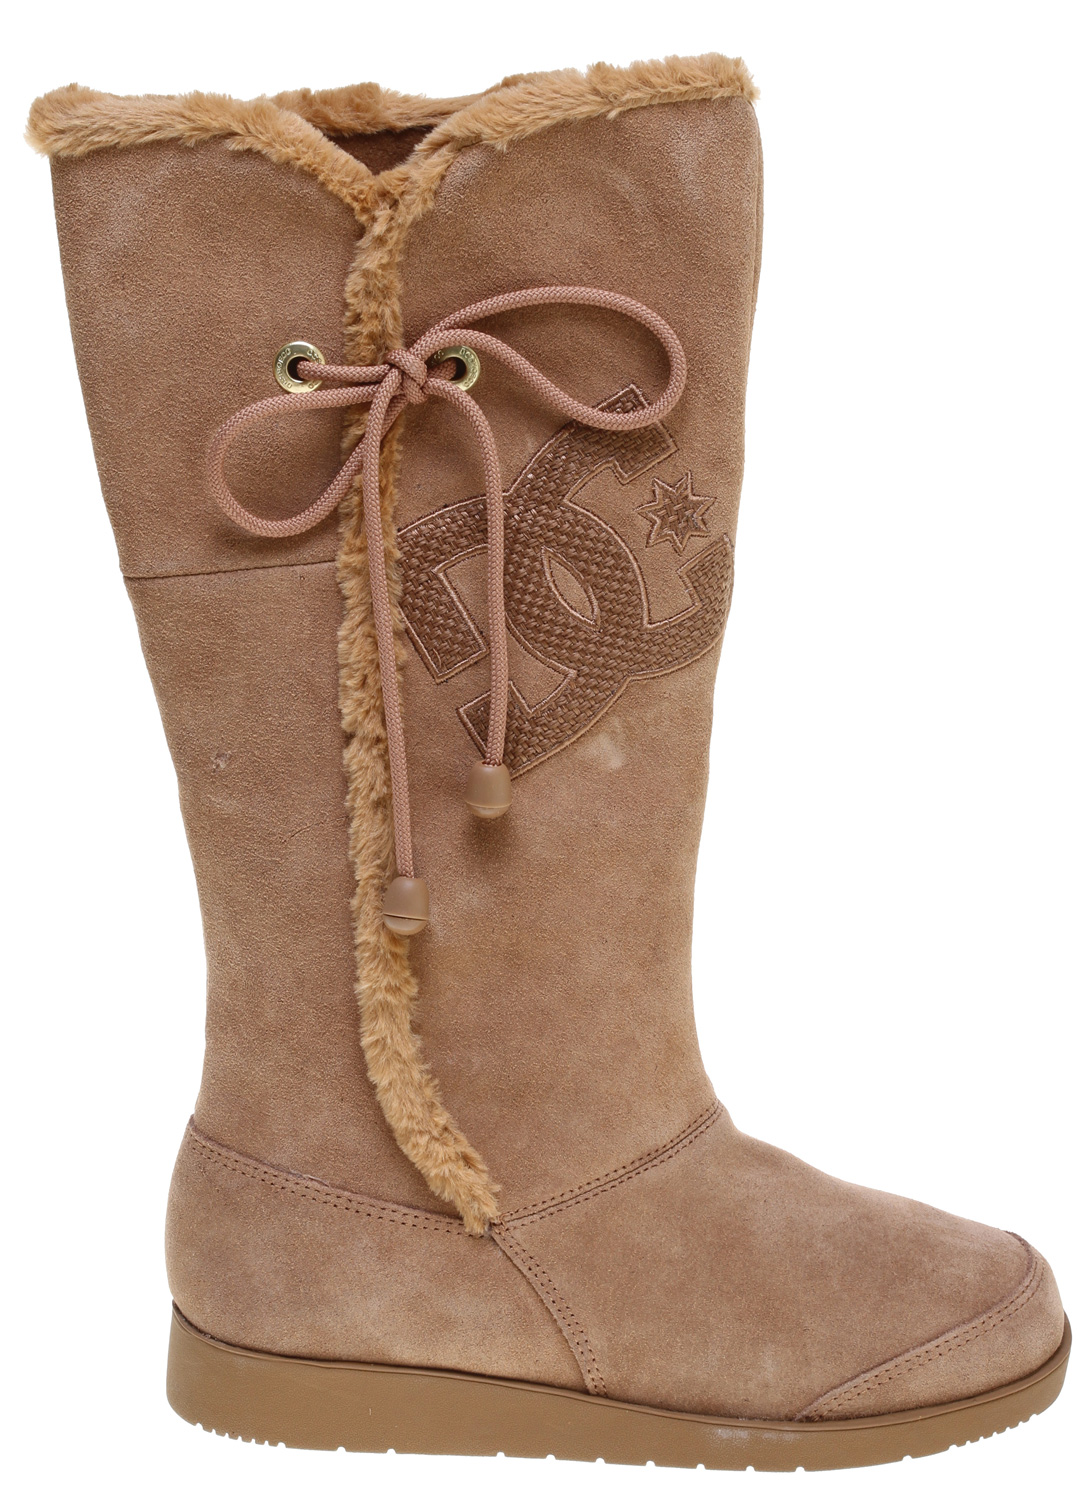 Key Features of the DC Gondola HI Boots Chestnut: Textile Upper Vulcanized Construction for great board feel and sole flex Latex Insole for comfort Abrasion-Resistant Sticky Rubber Outsole Die cut eva insole die cut eva midsole - $79.95